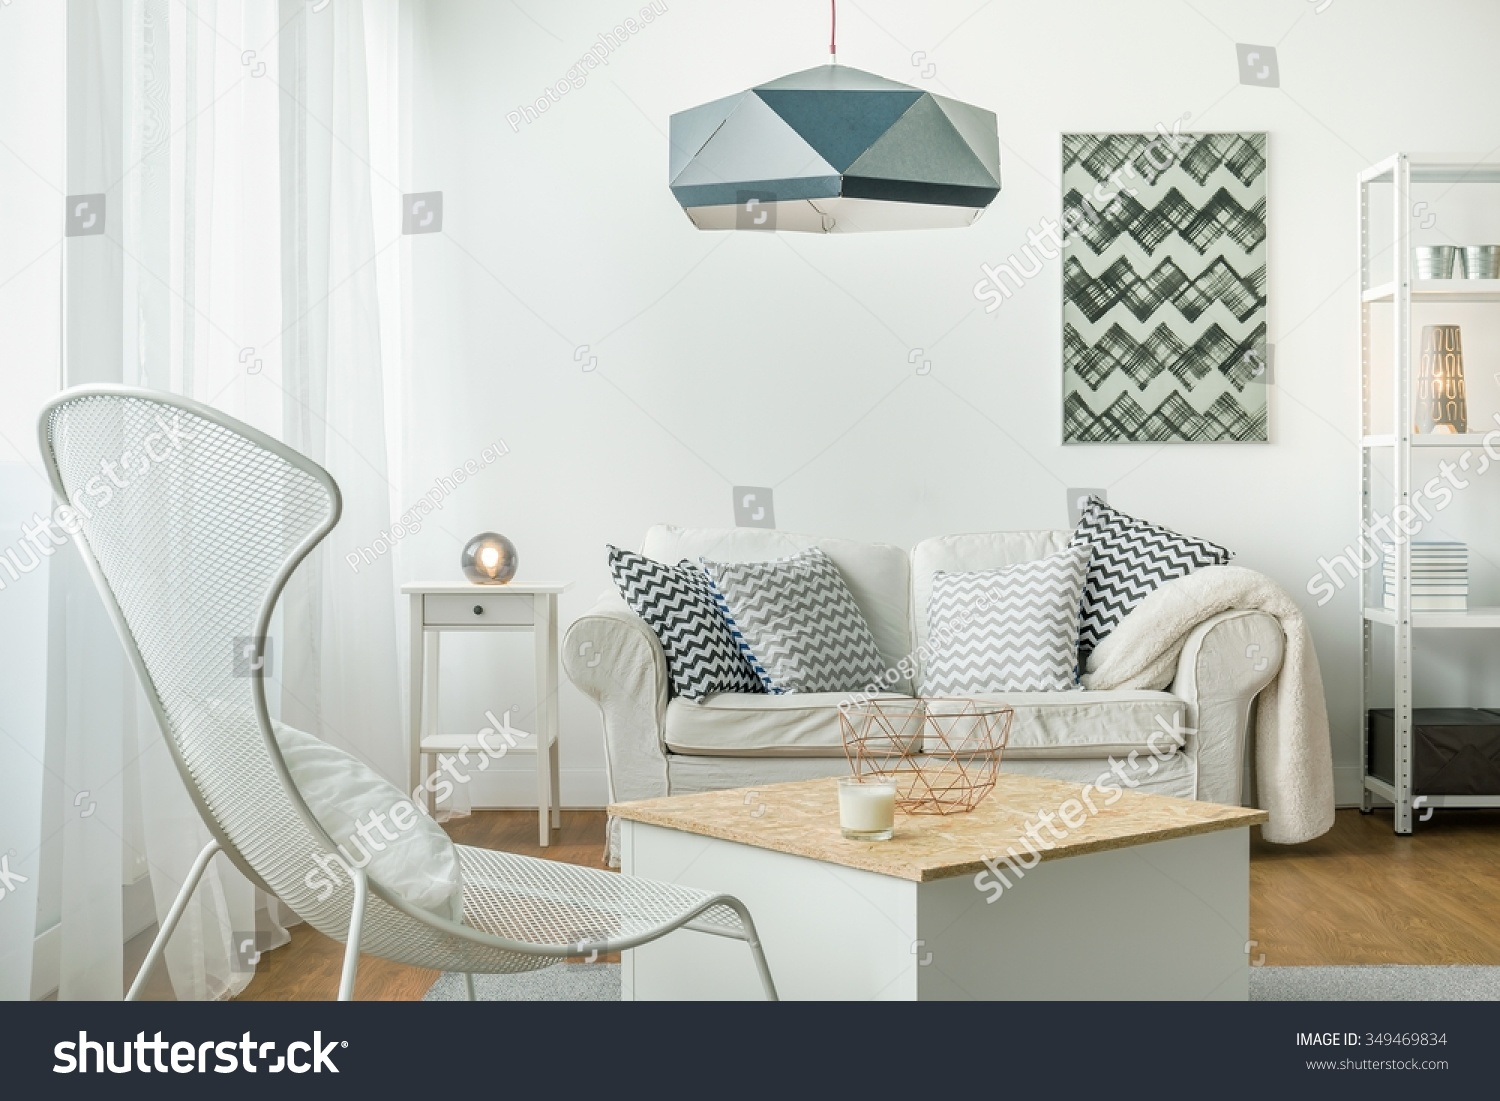 Idea Simple Bright Living Room Arrangement Stock Photo (100% Legal ...